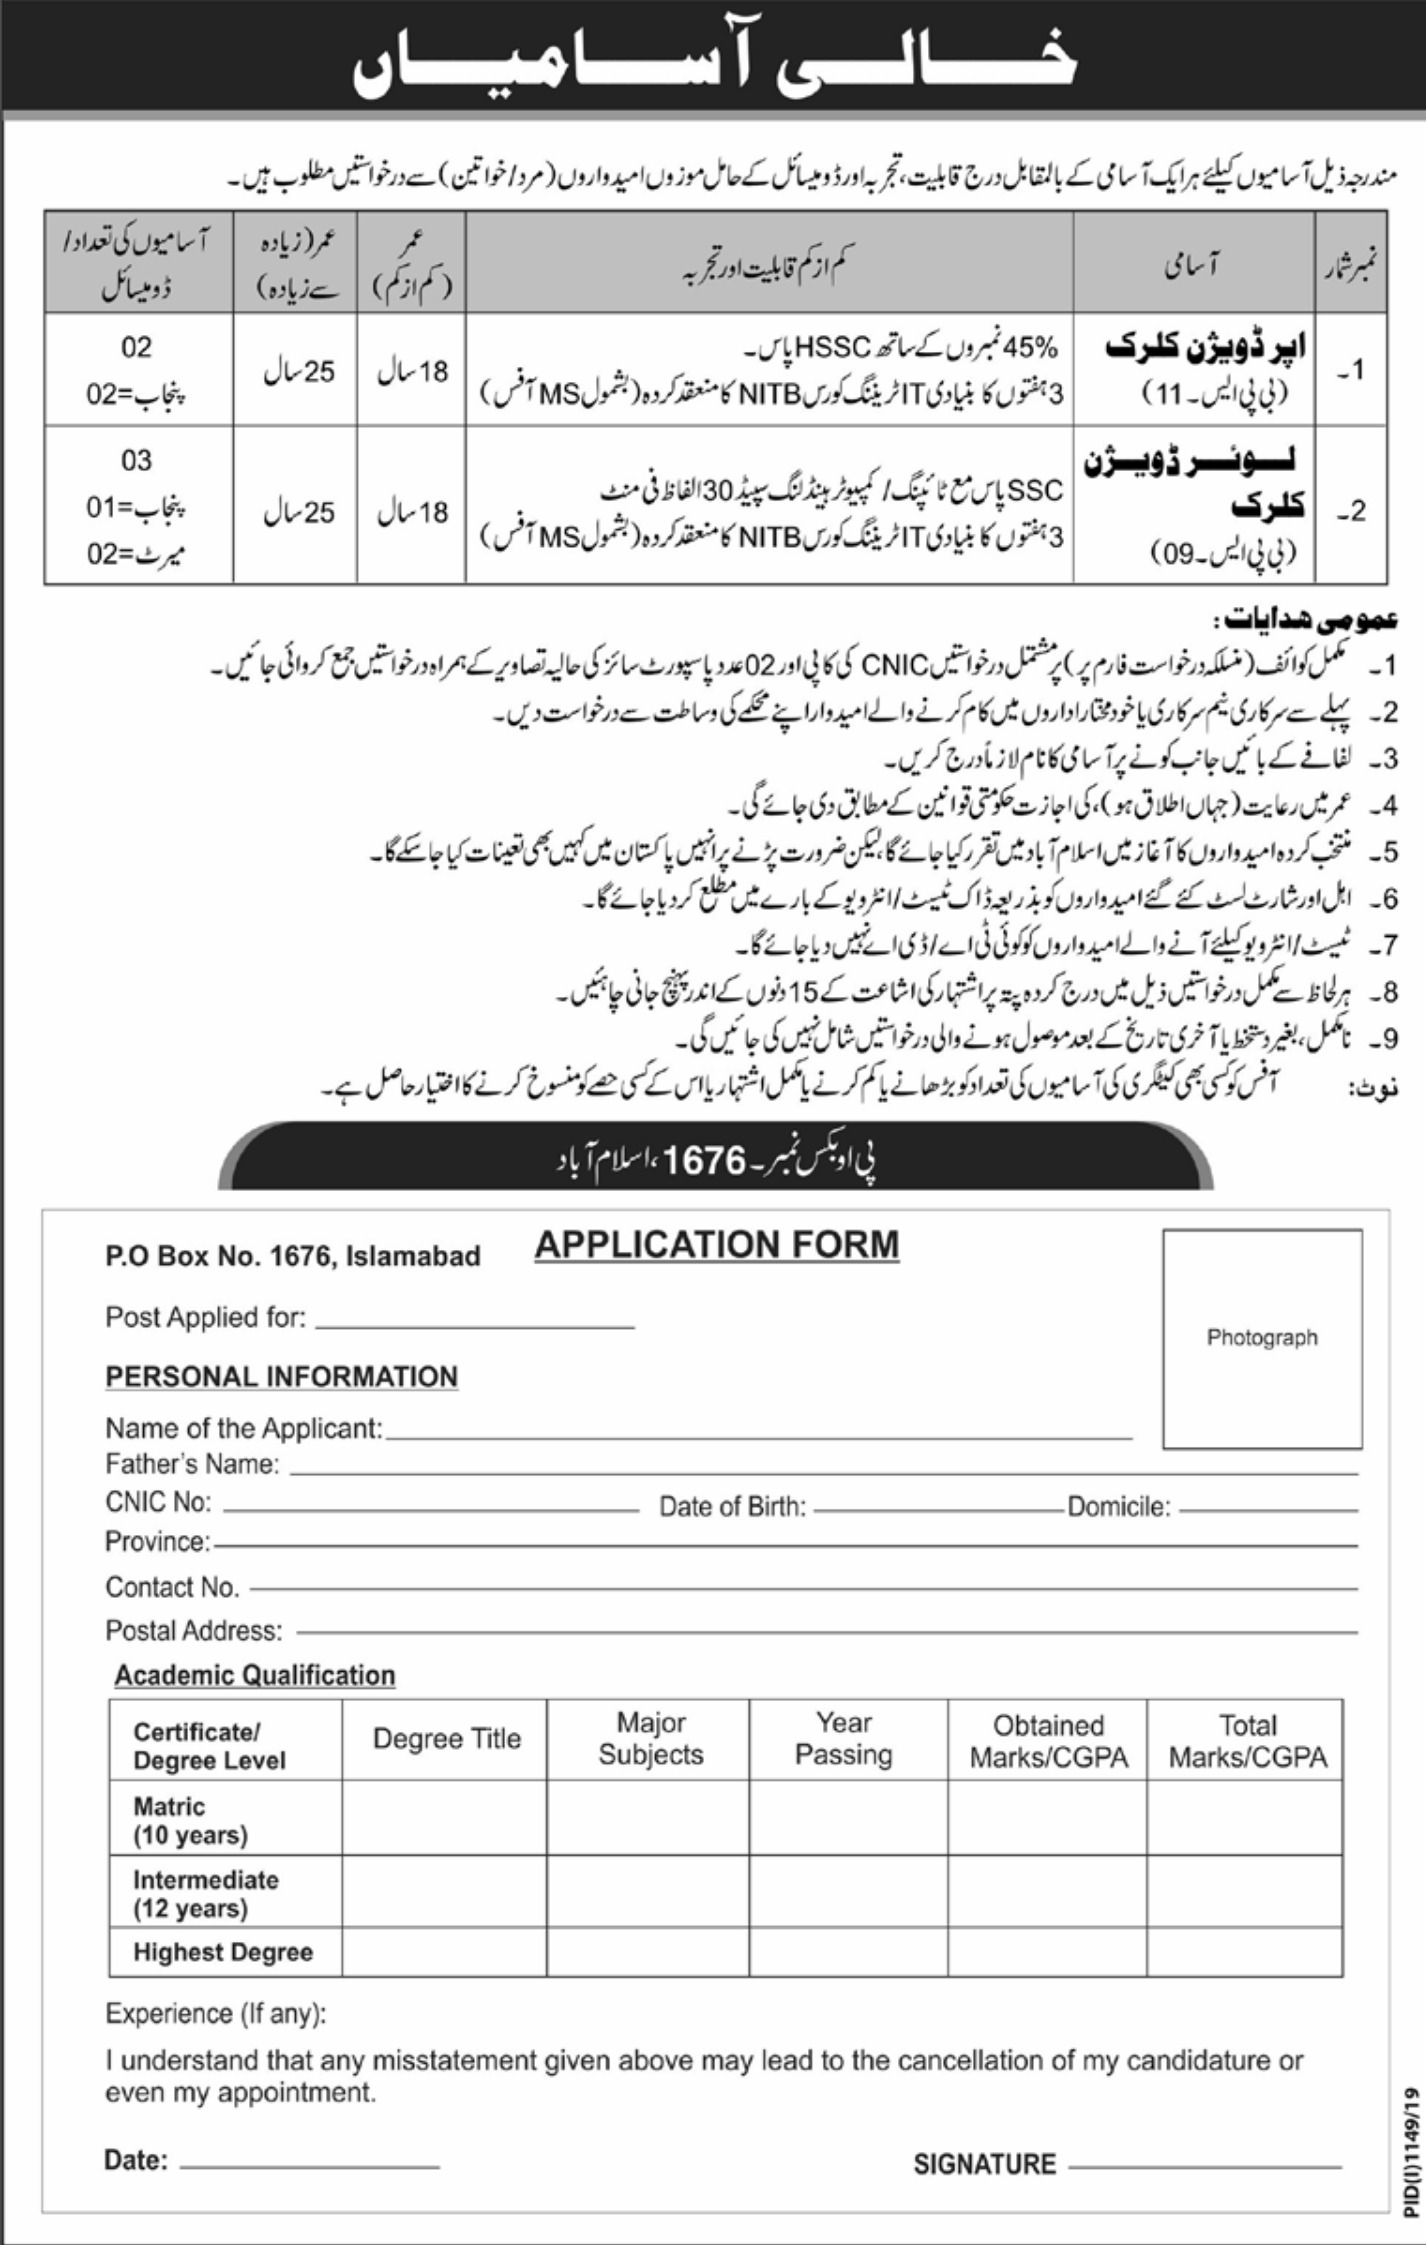 Public Sector Organization Jobs 2019 P.O.Box 1676 Islamabad